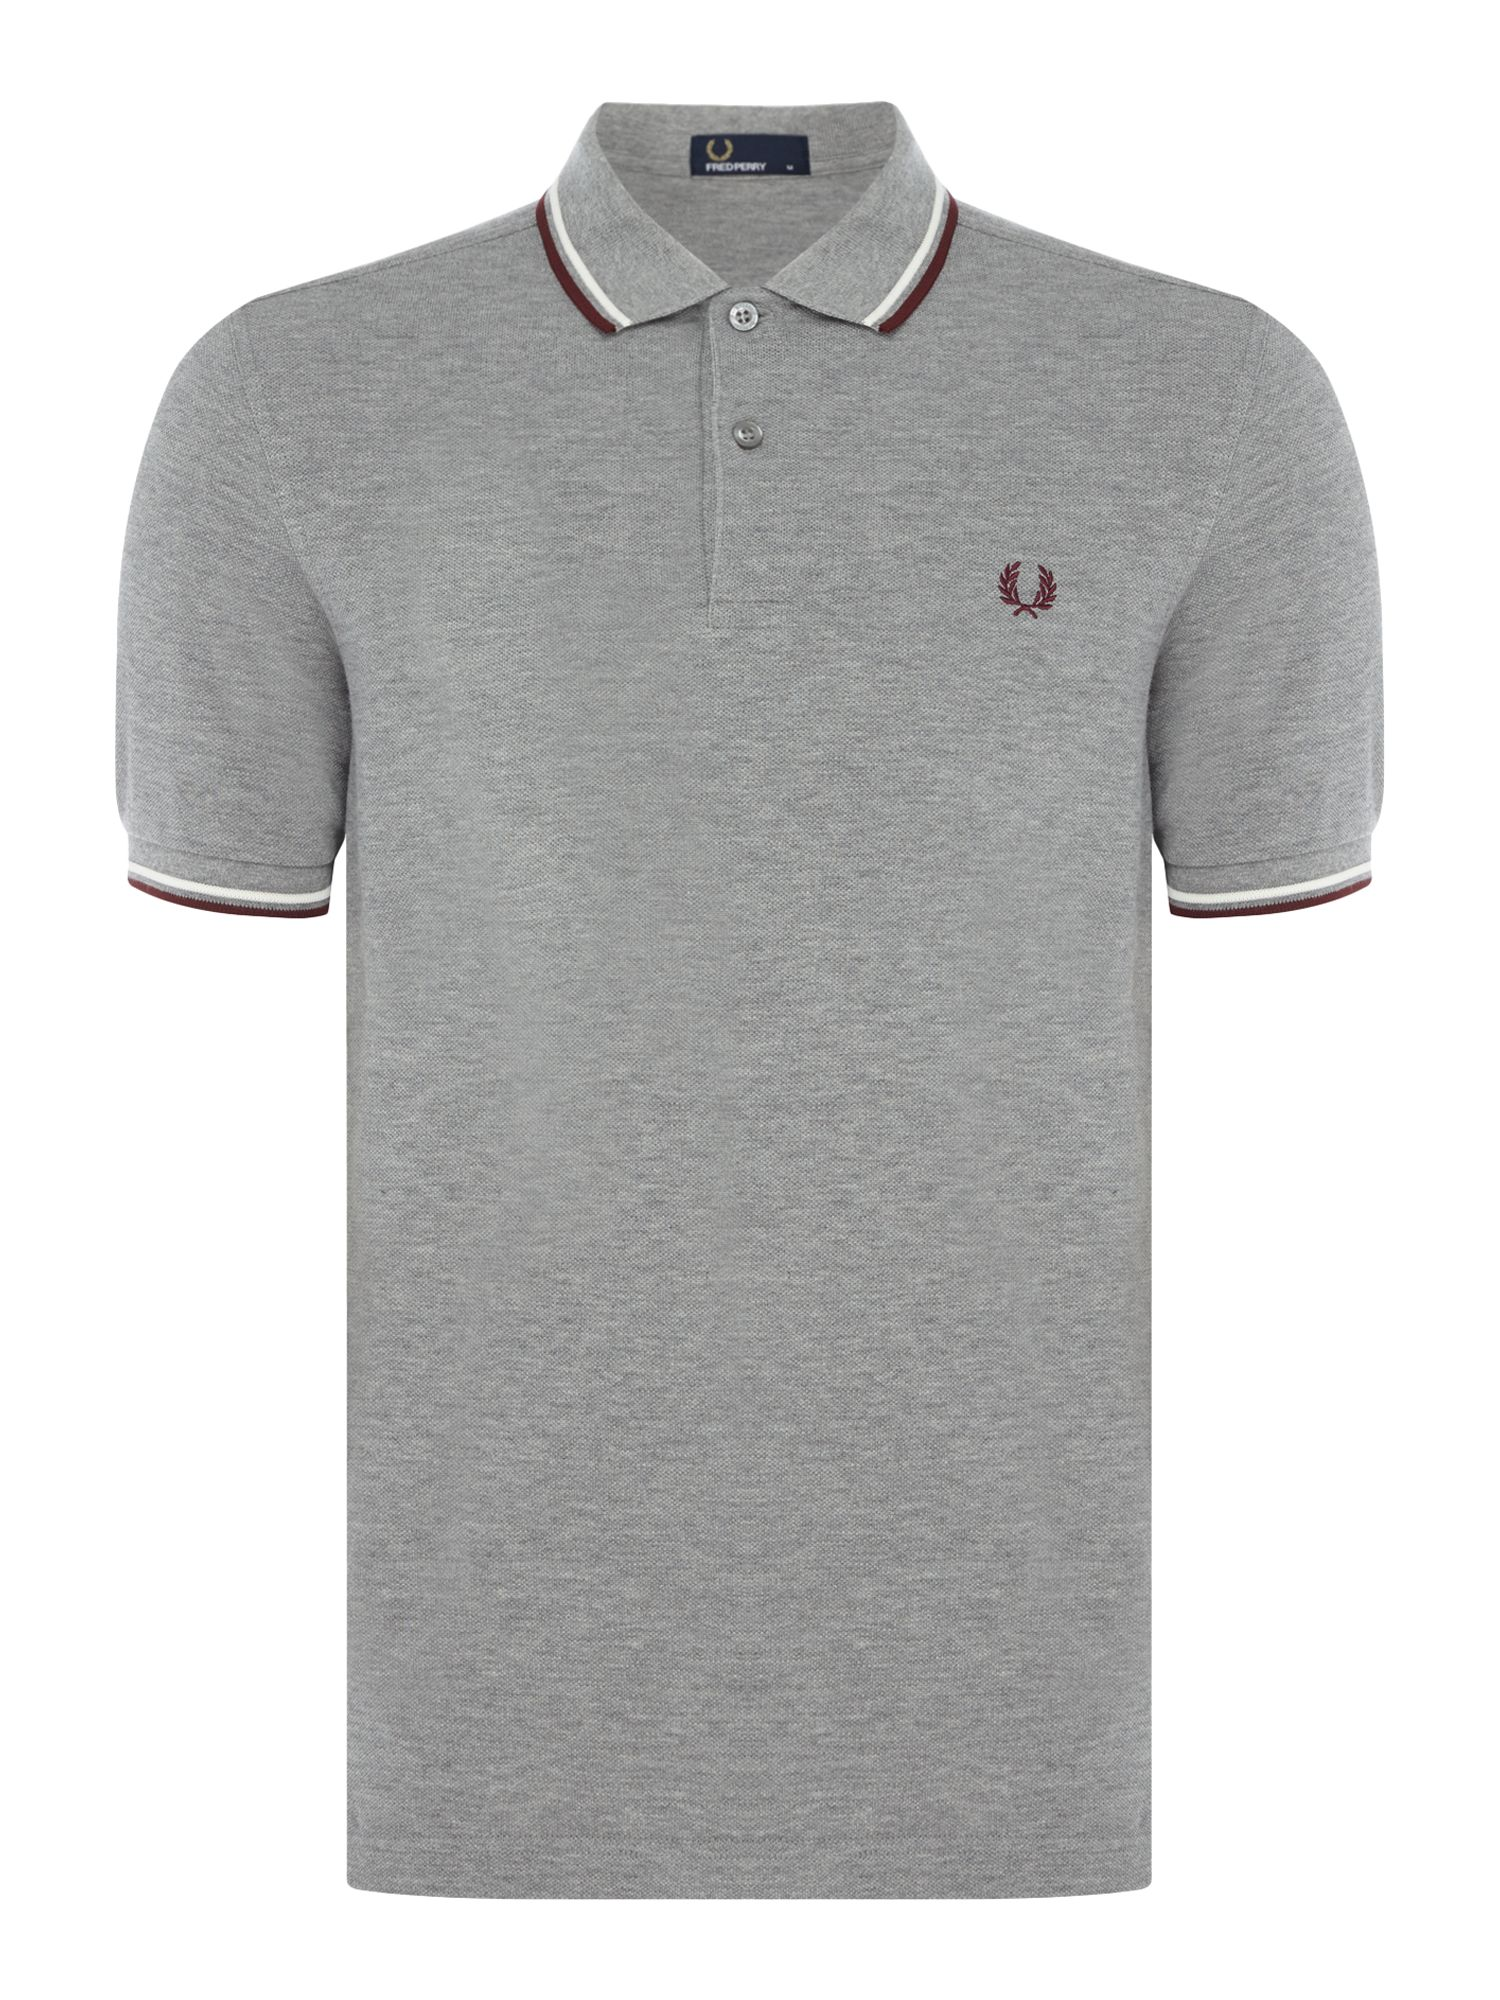 Men's Fred Perry Plain Twin Tipped Polo Shirt, Grey Marl